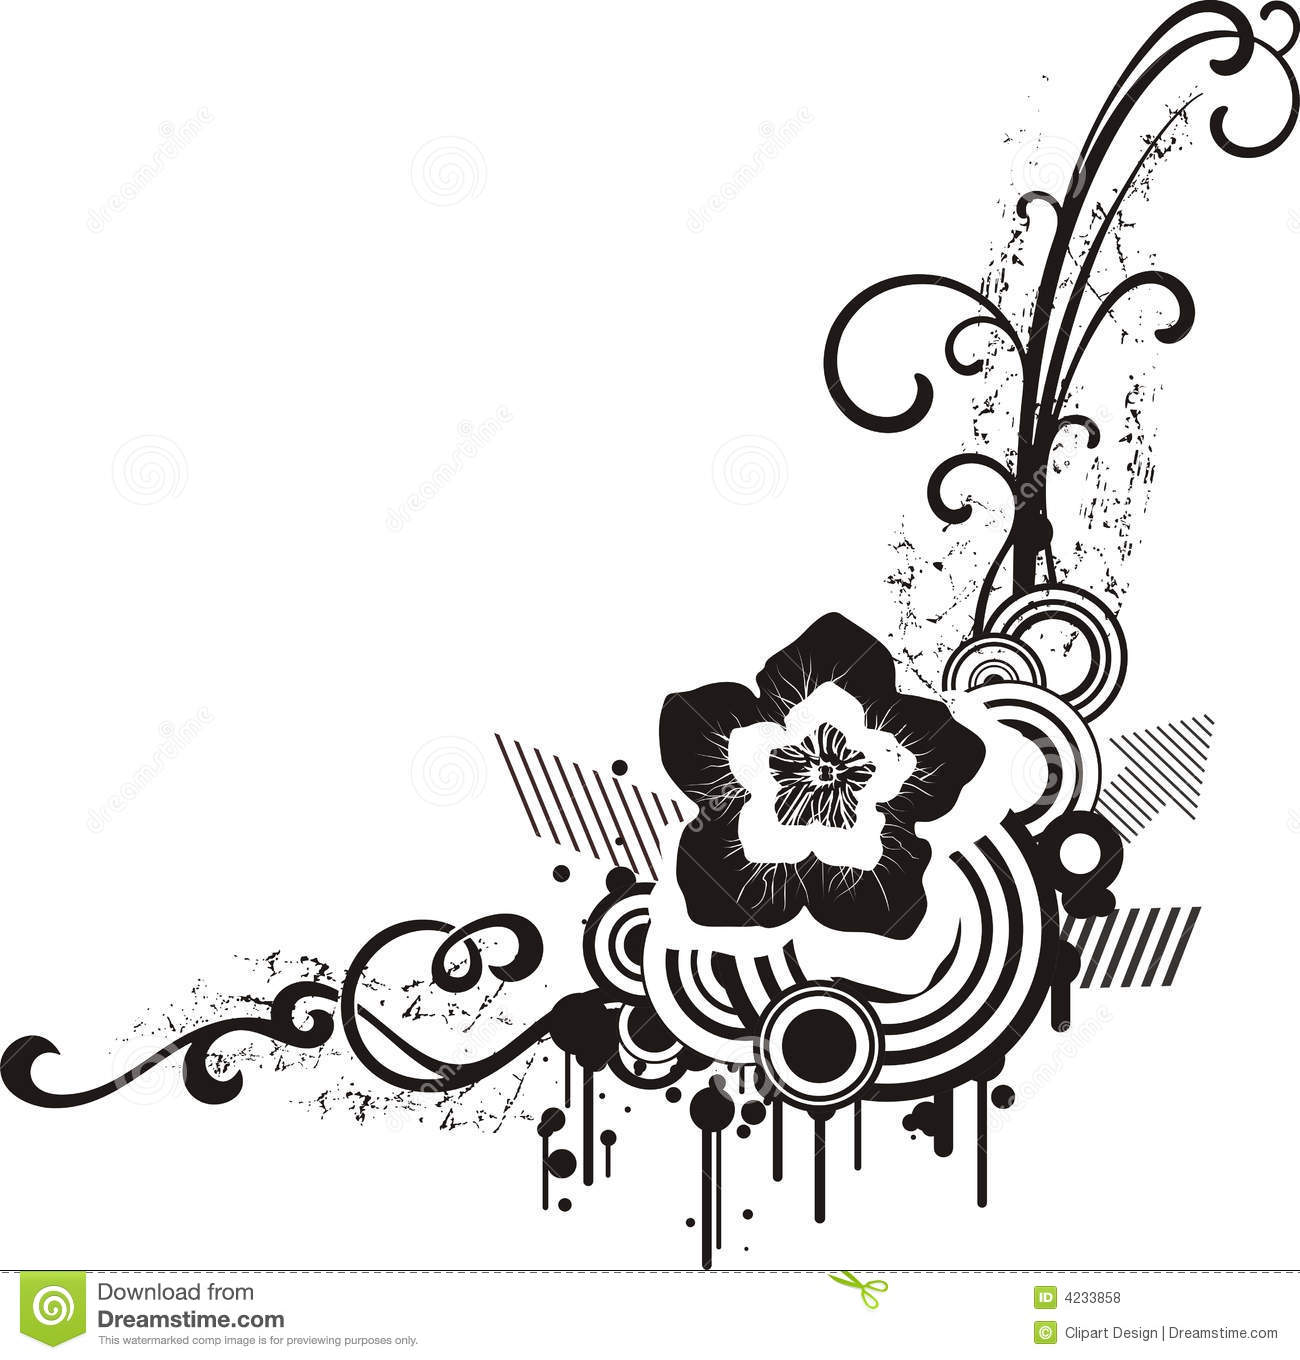 7 black and white flower design images black and white for Cool designs in black and white